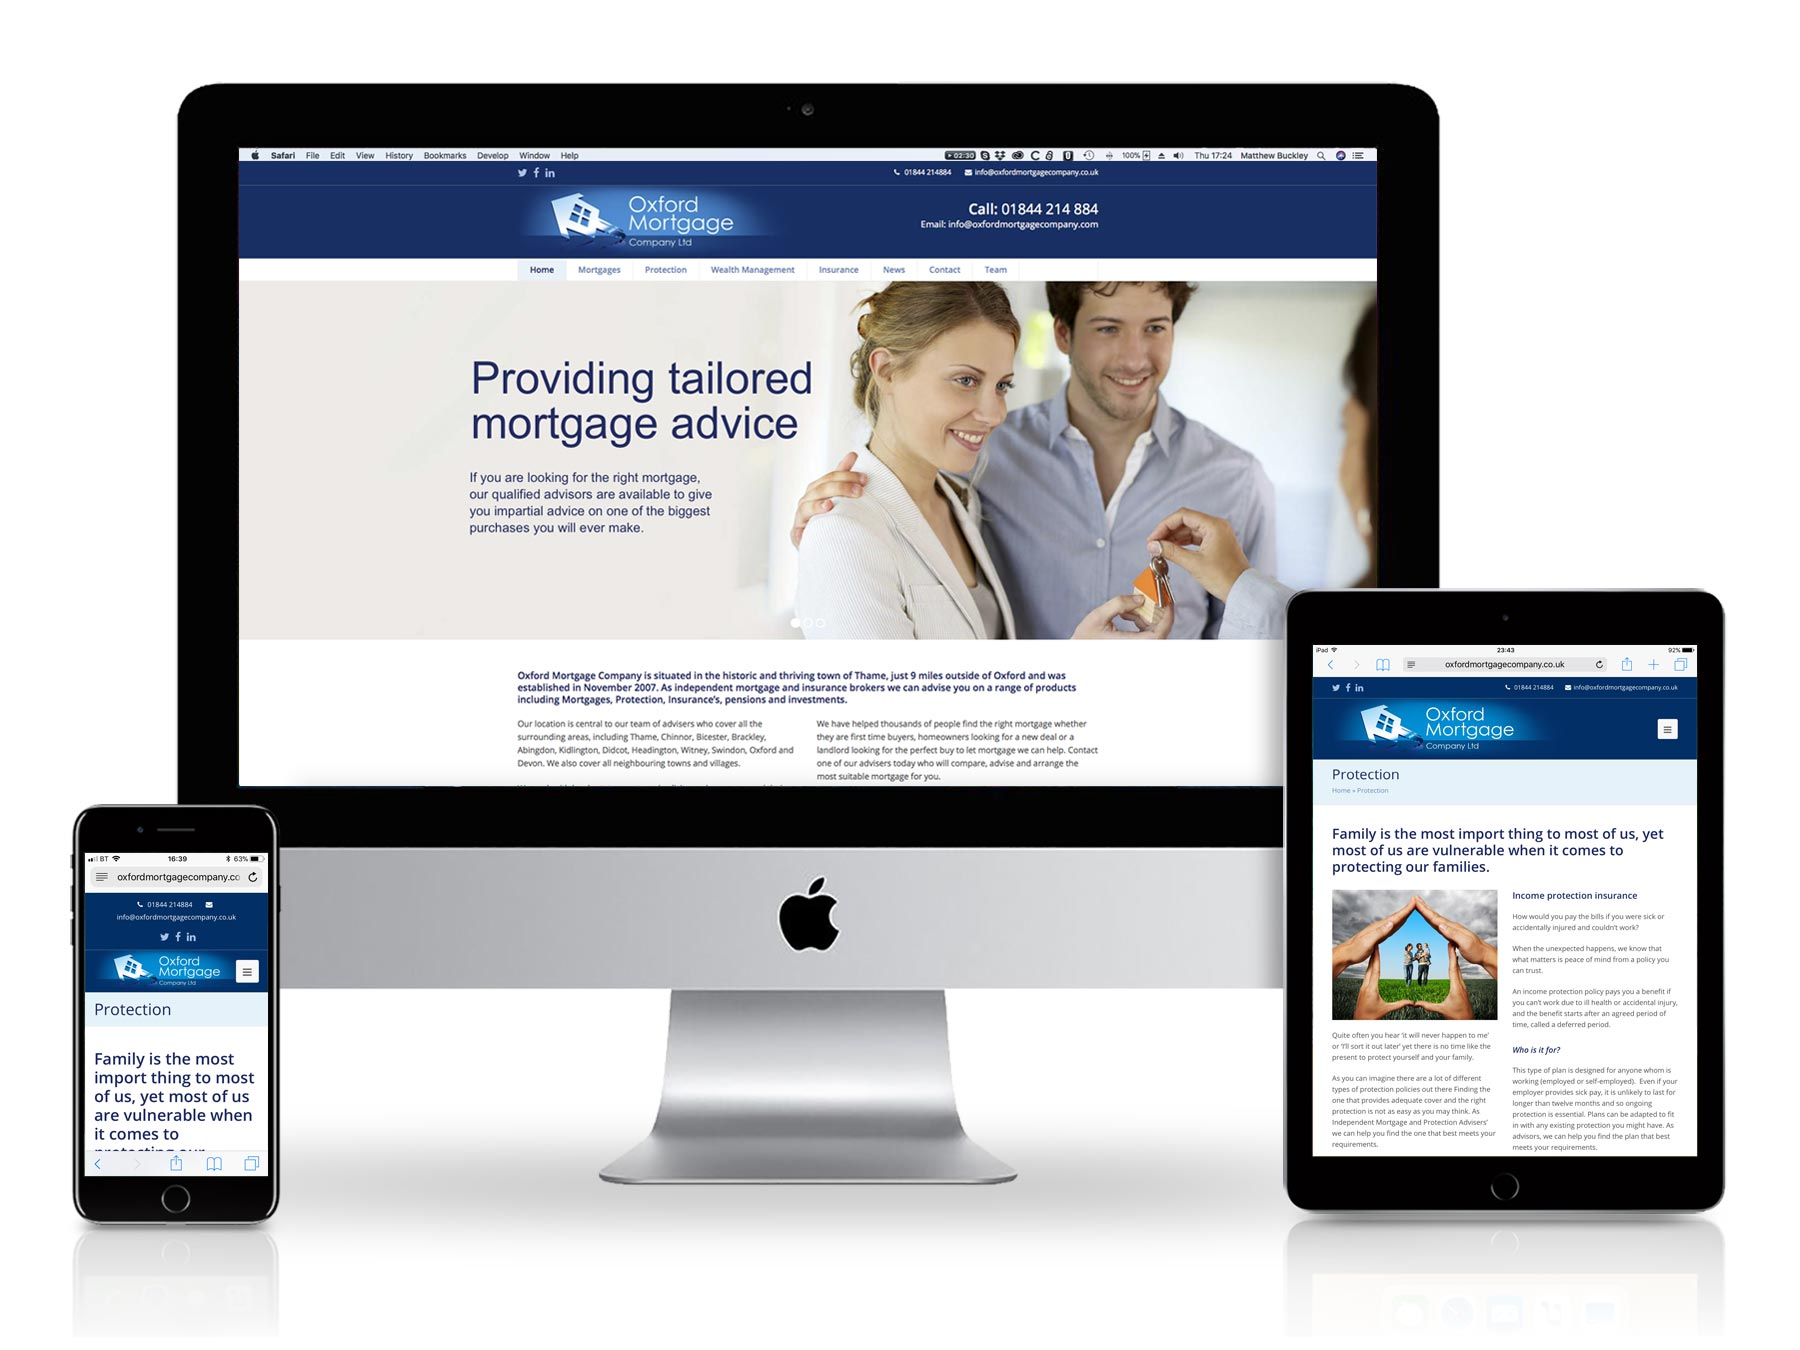 Oxford Mortgage Company Website